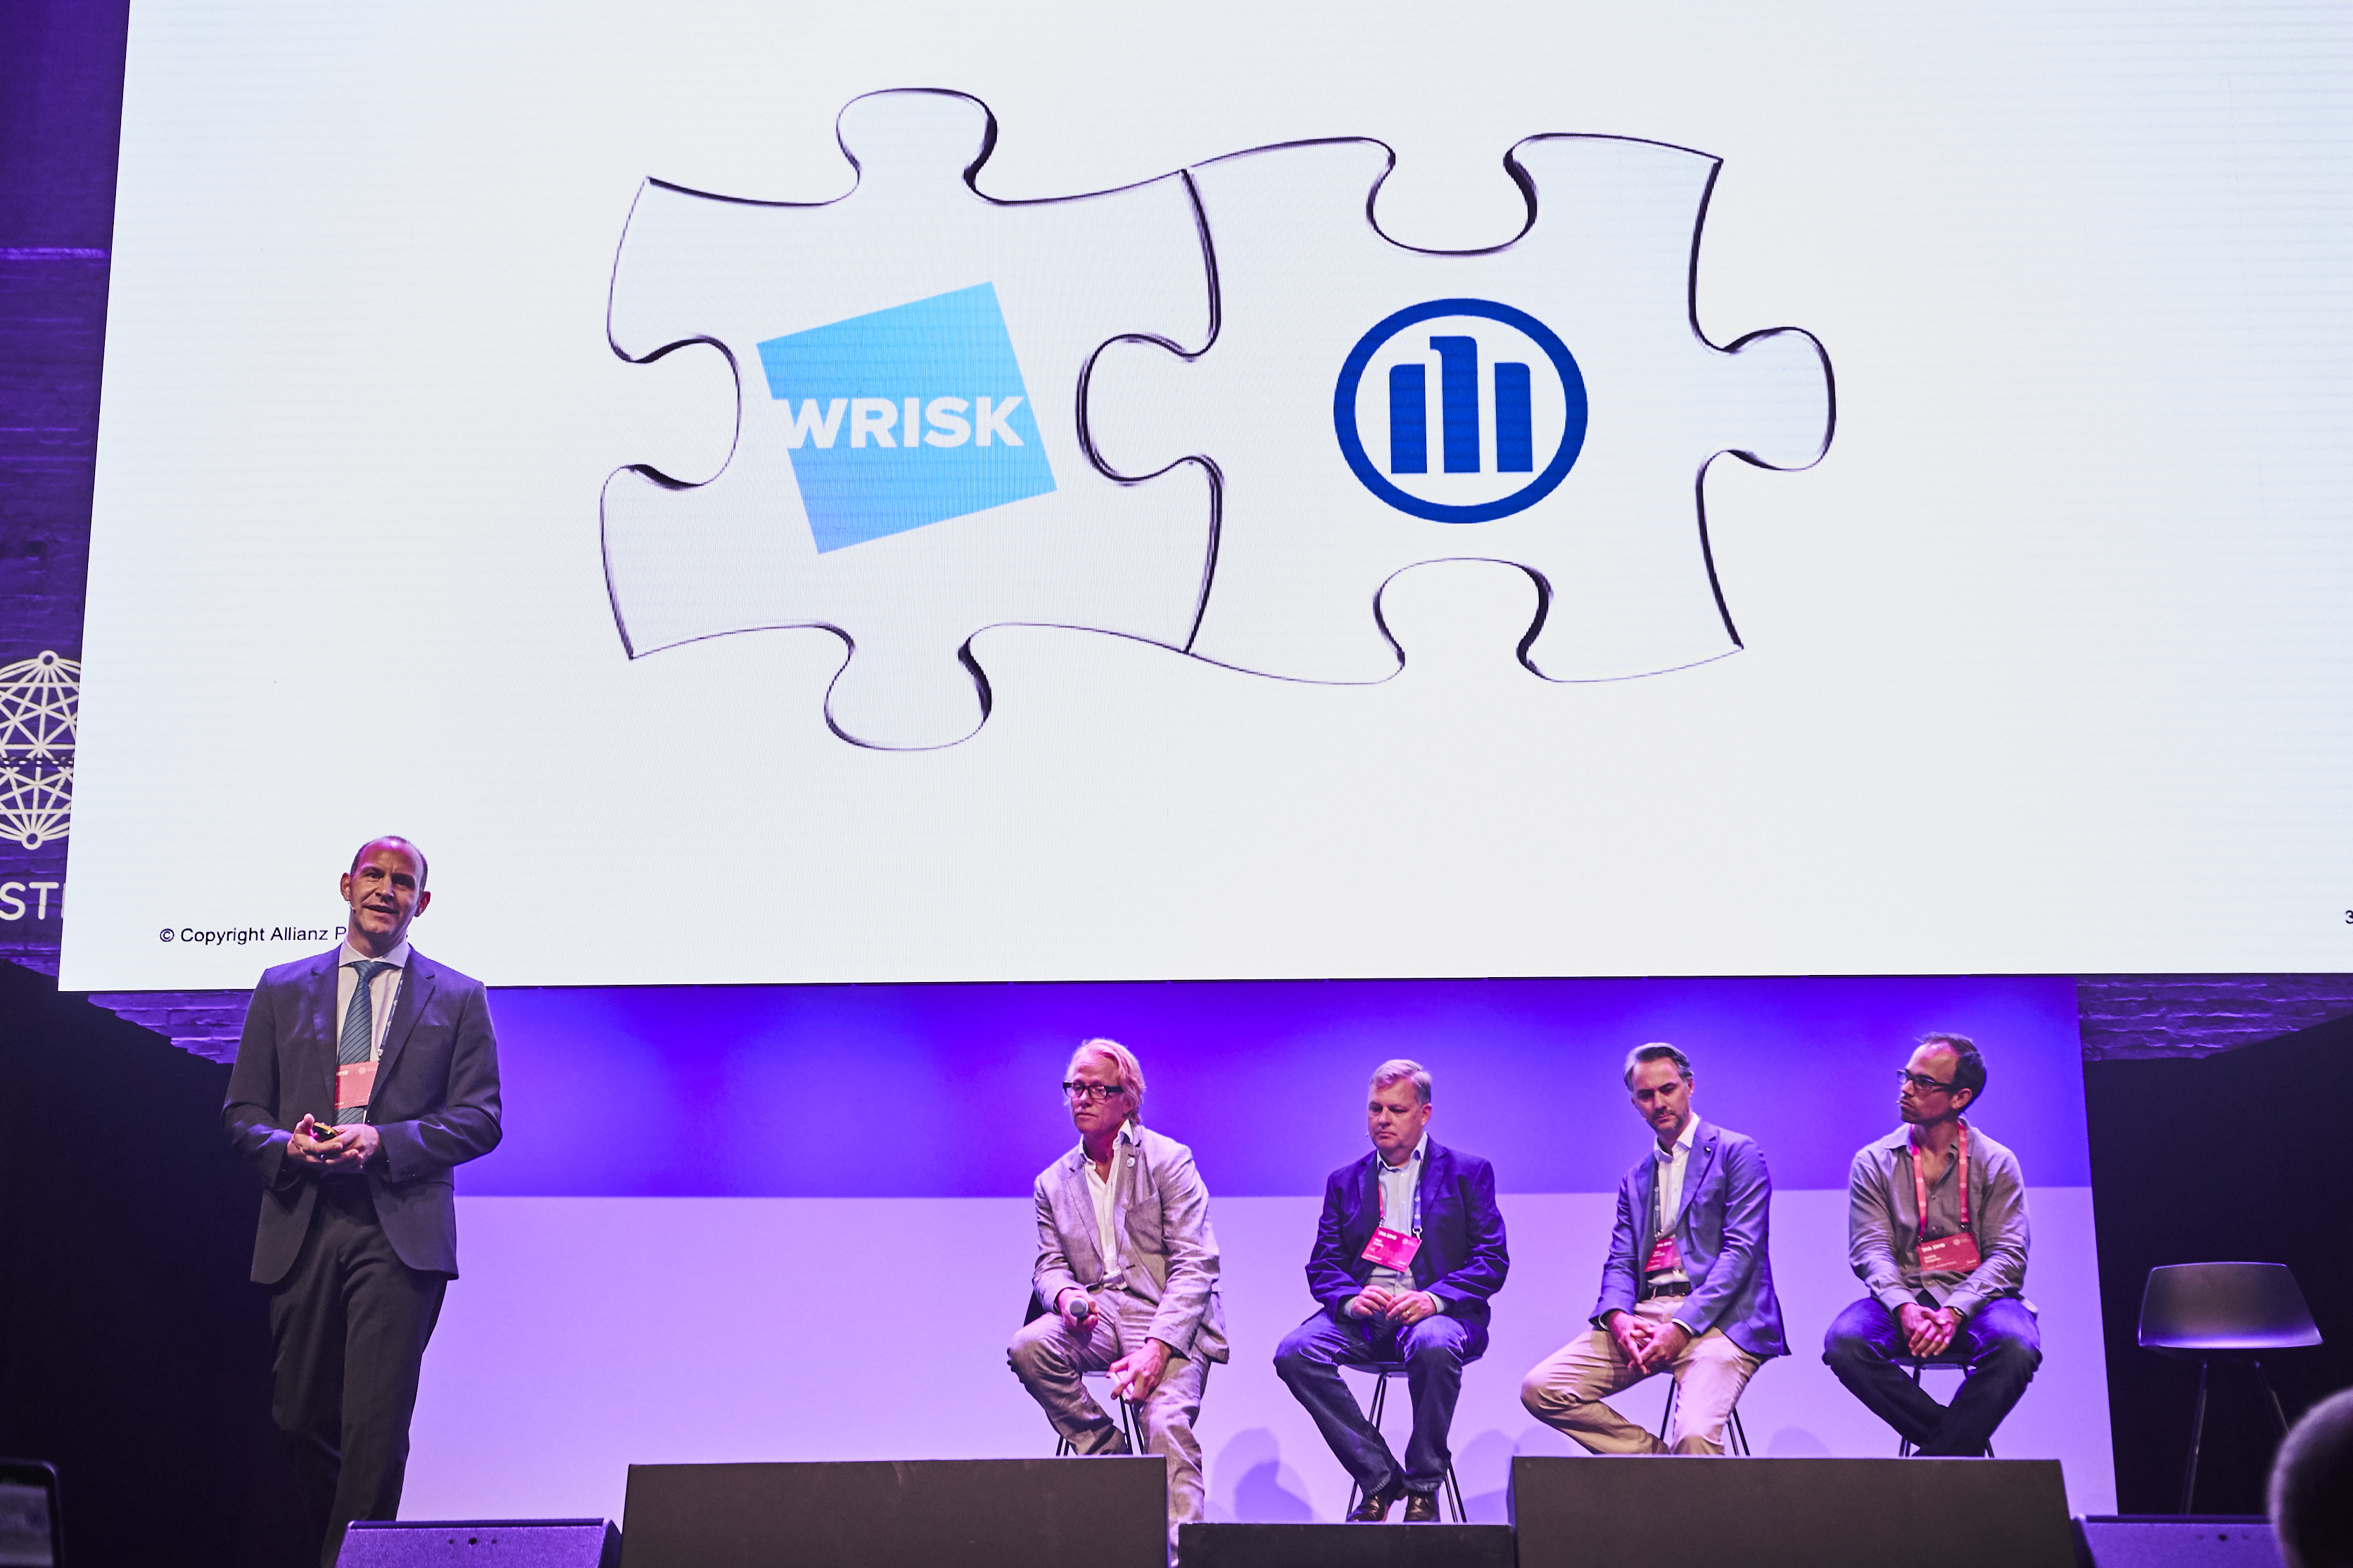 Wrisk partner with Allianz, on stage at DIA